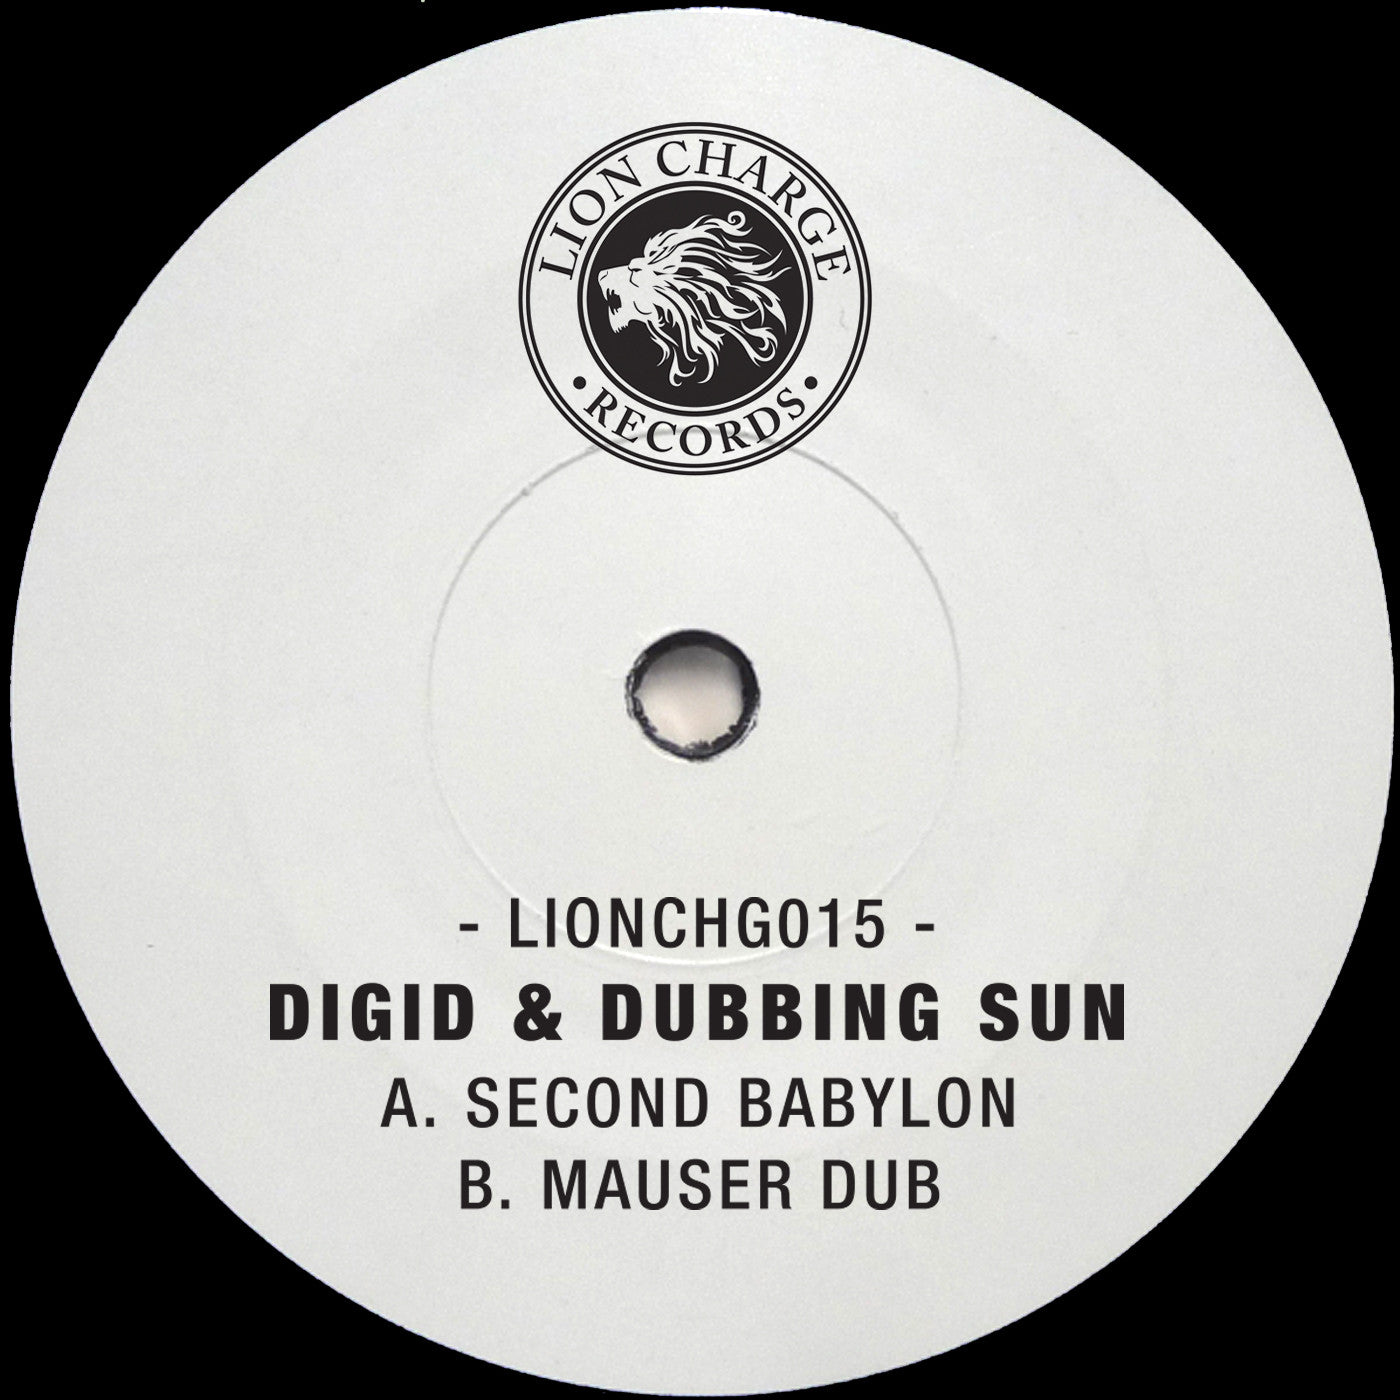 Digid & Dubbing Sun - Second Babylon // Mauser Dub - Unearthed Sounds